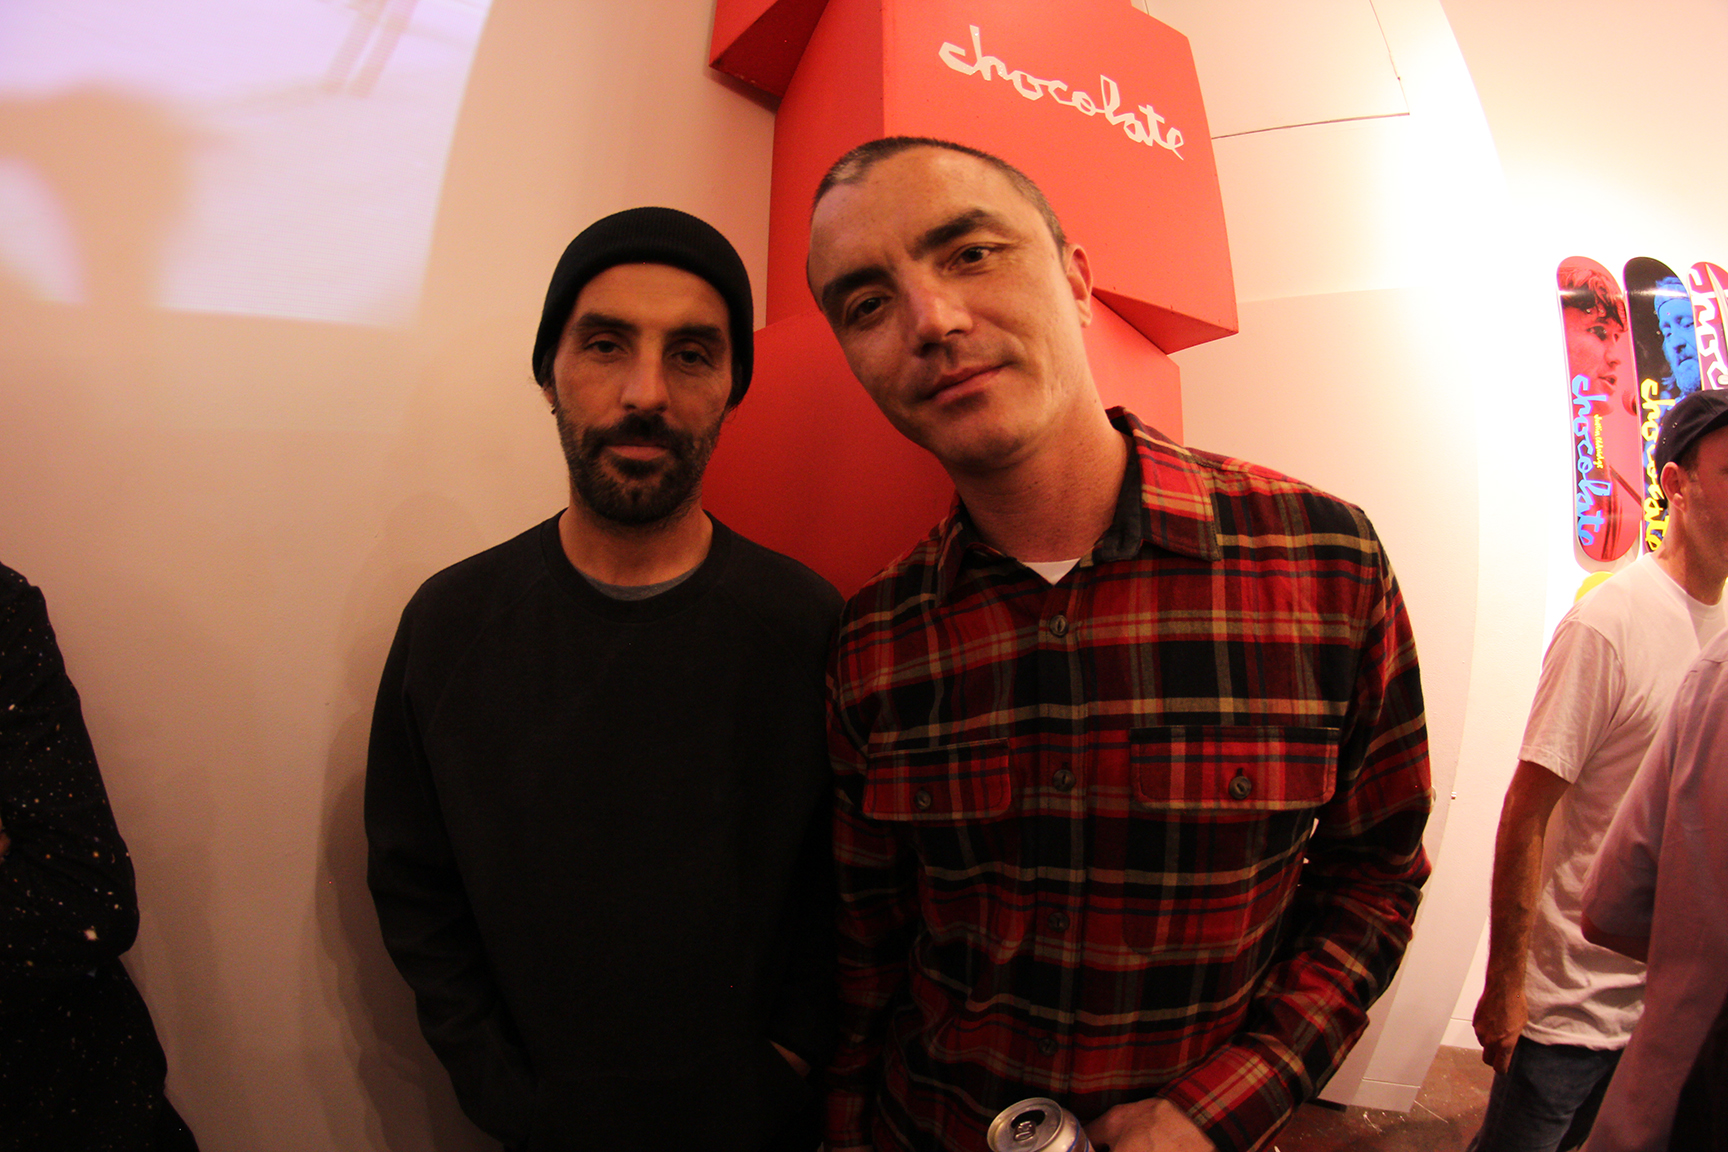 NYC OGs, Gino Iannucci (left) and Jefferson Pang (right).